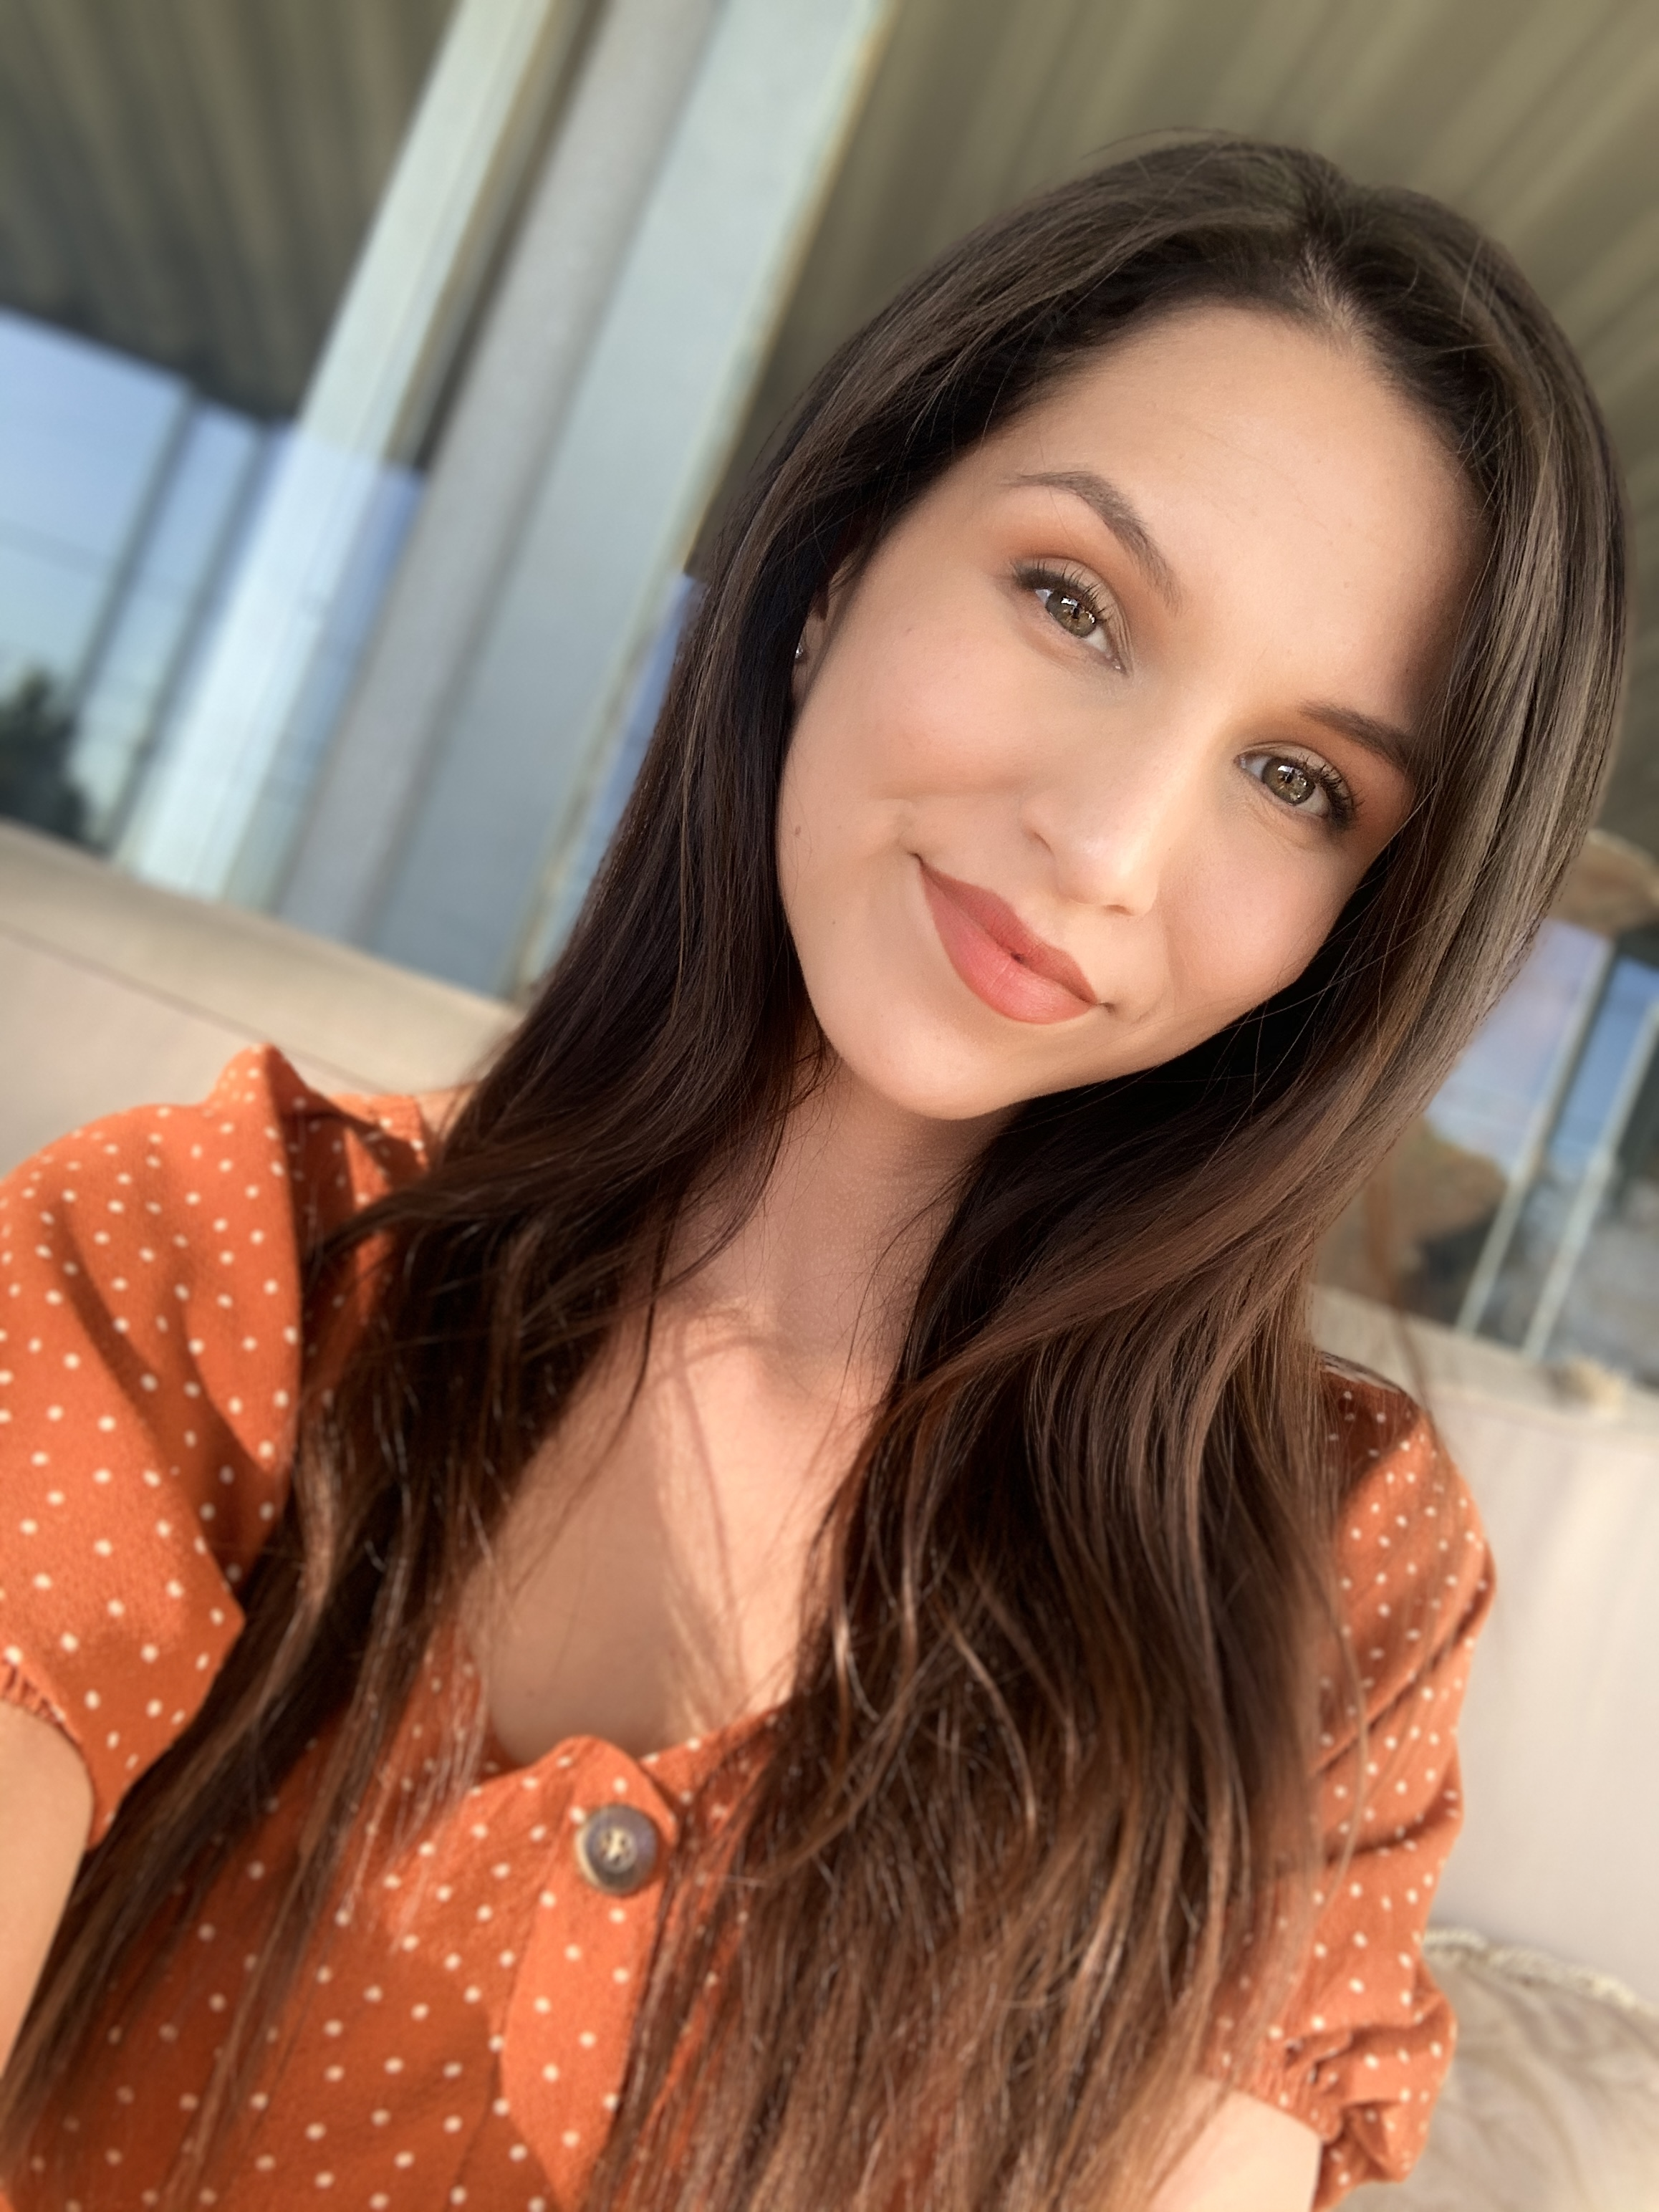 24-year-old, Single From: Whittier, CA, United States